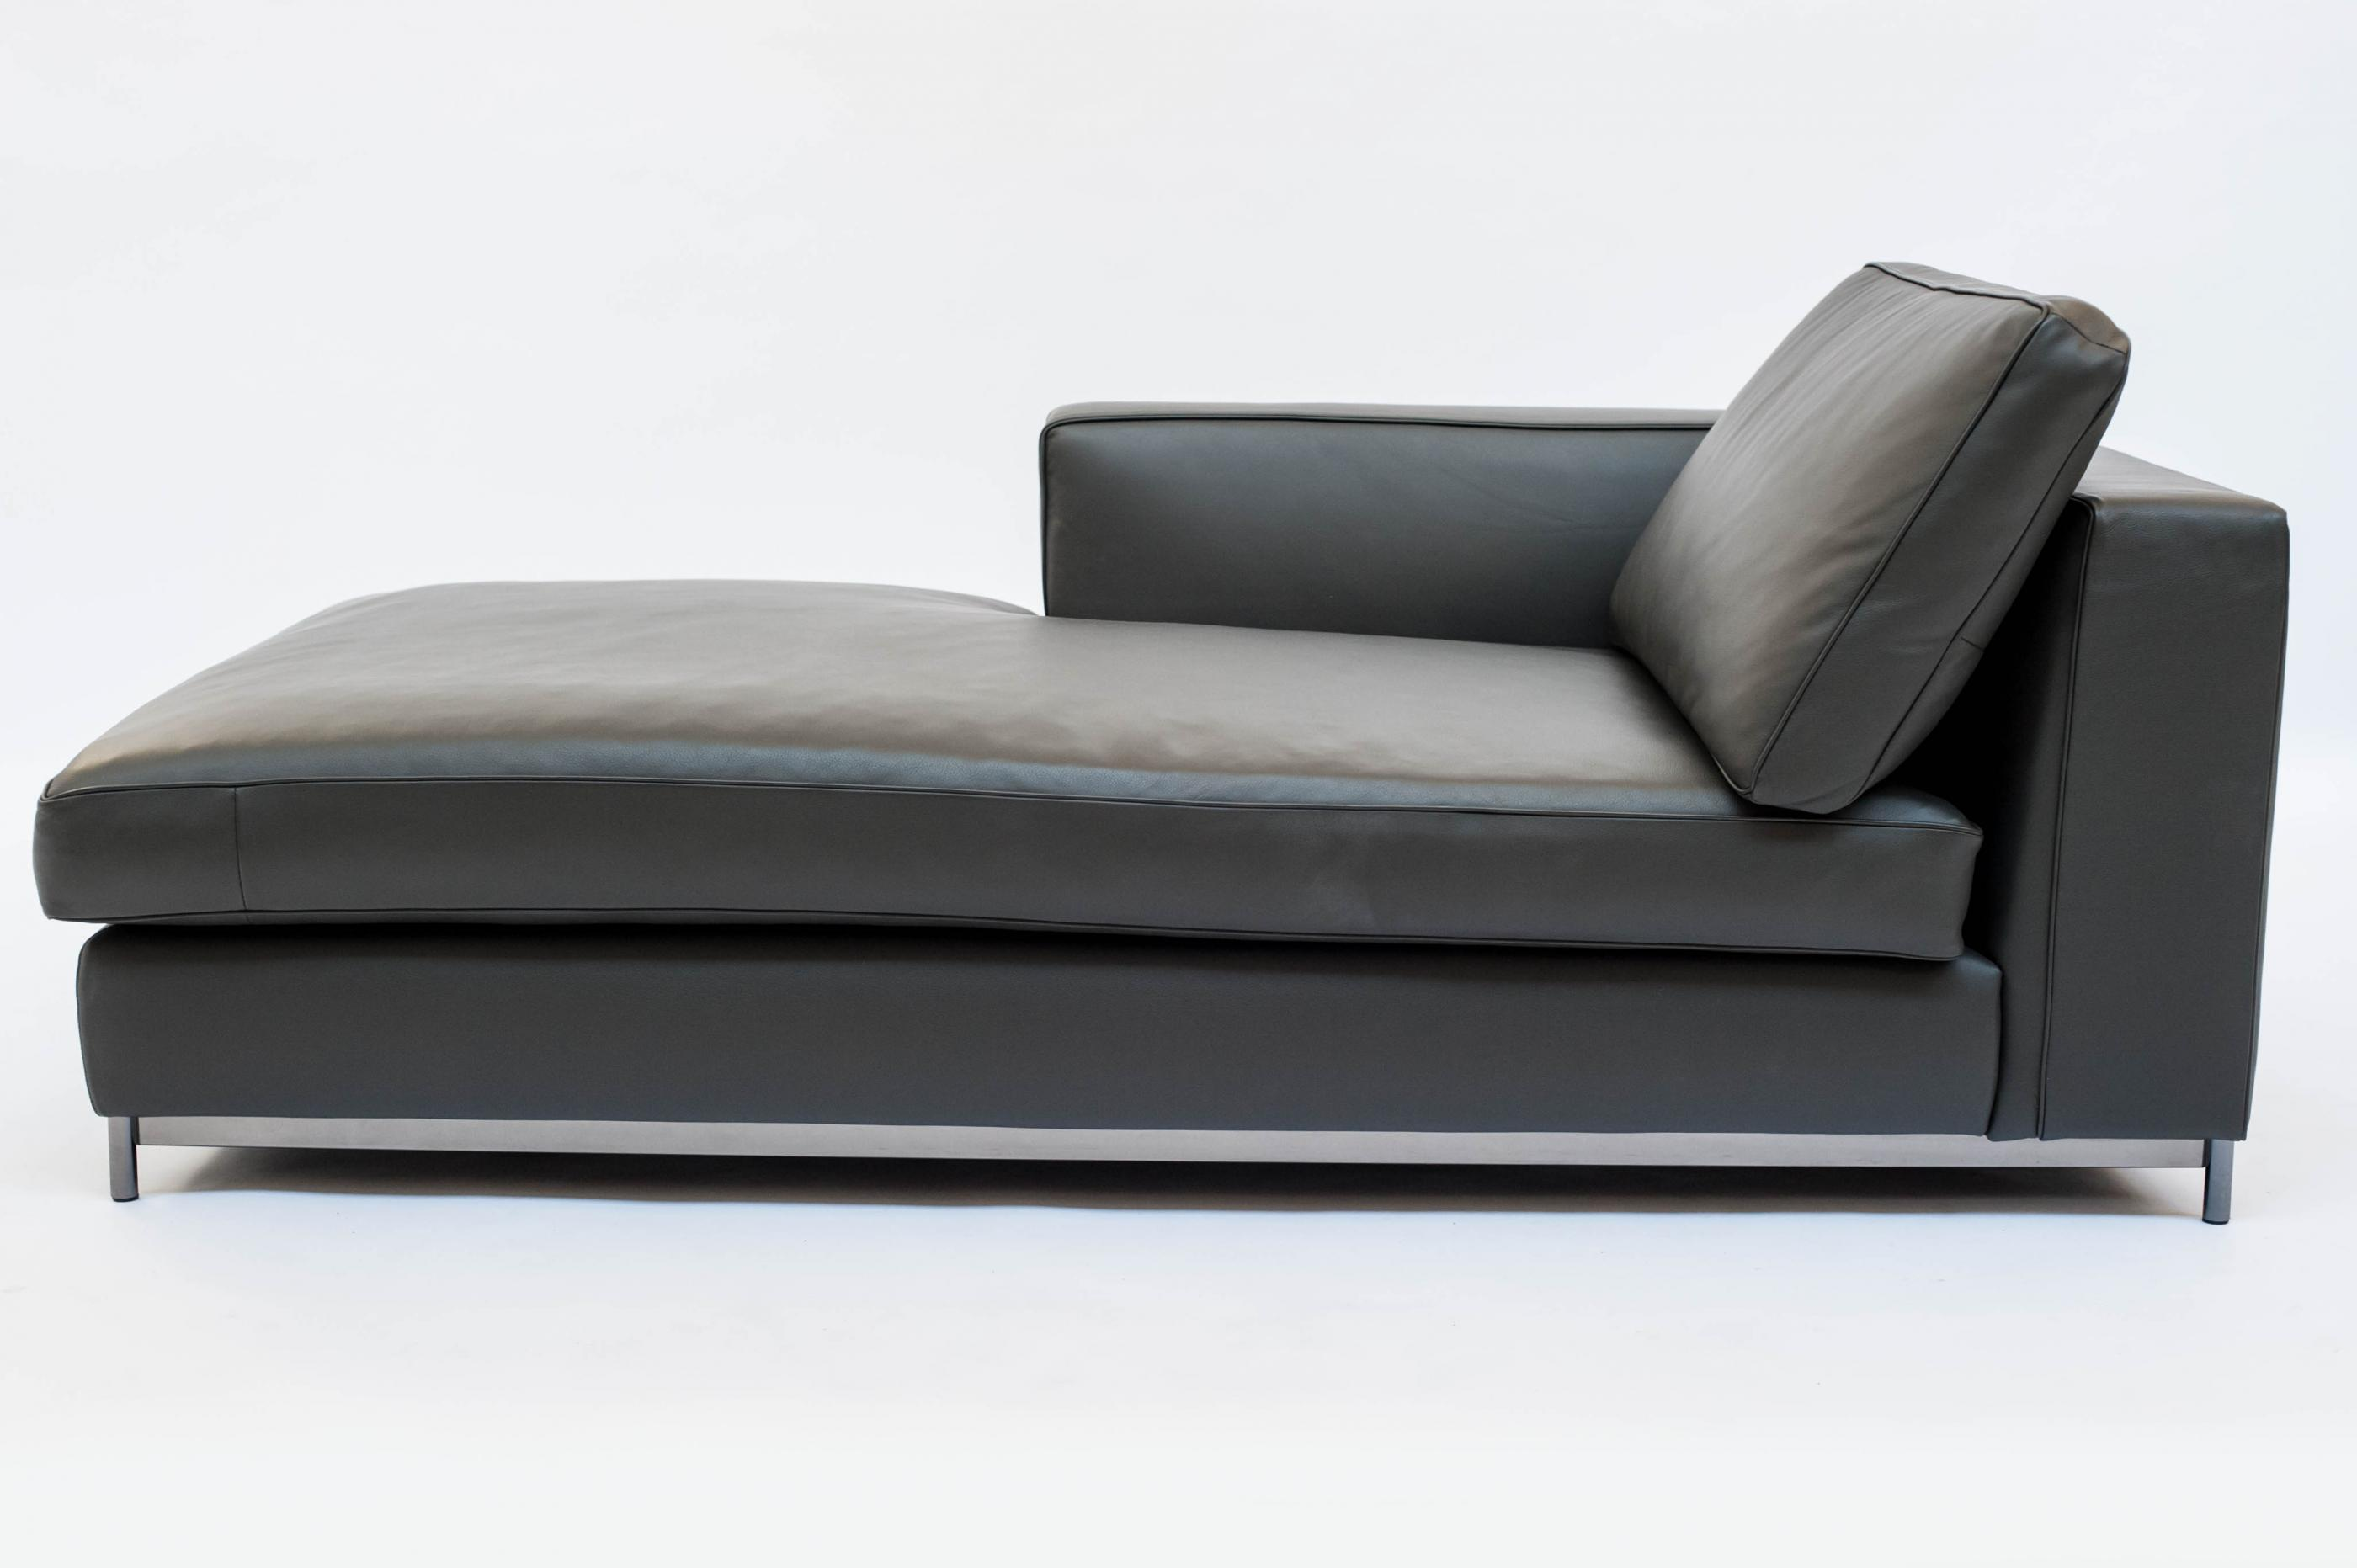 Contemporary Flatware Chaise Longue Albers Rodolfo Dordoni Minotti Modernism